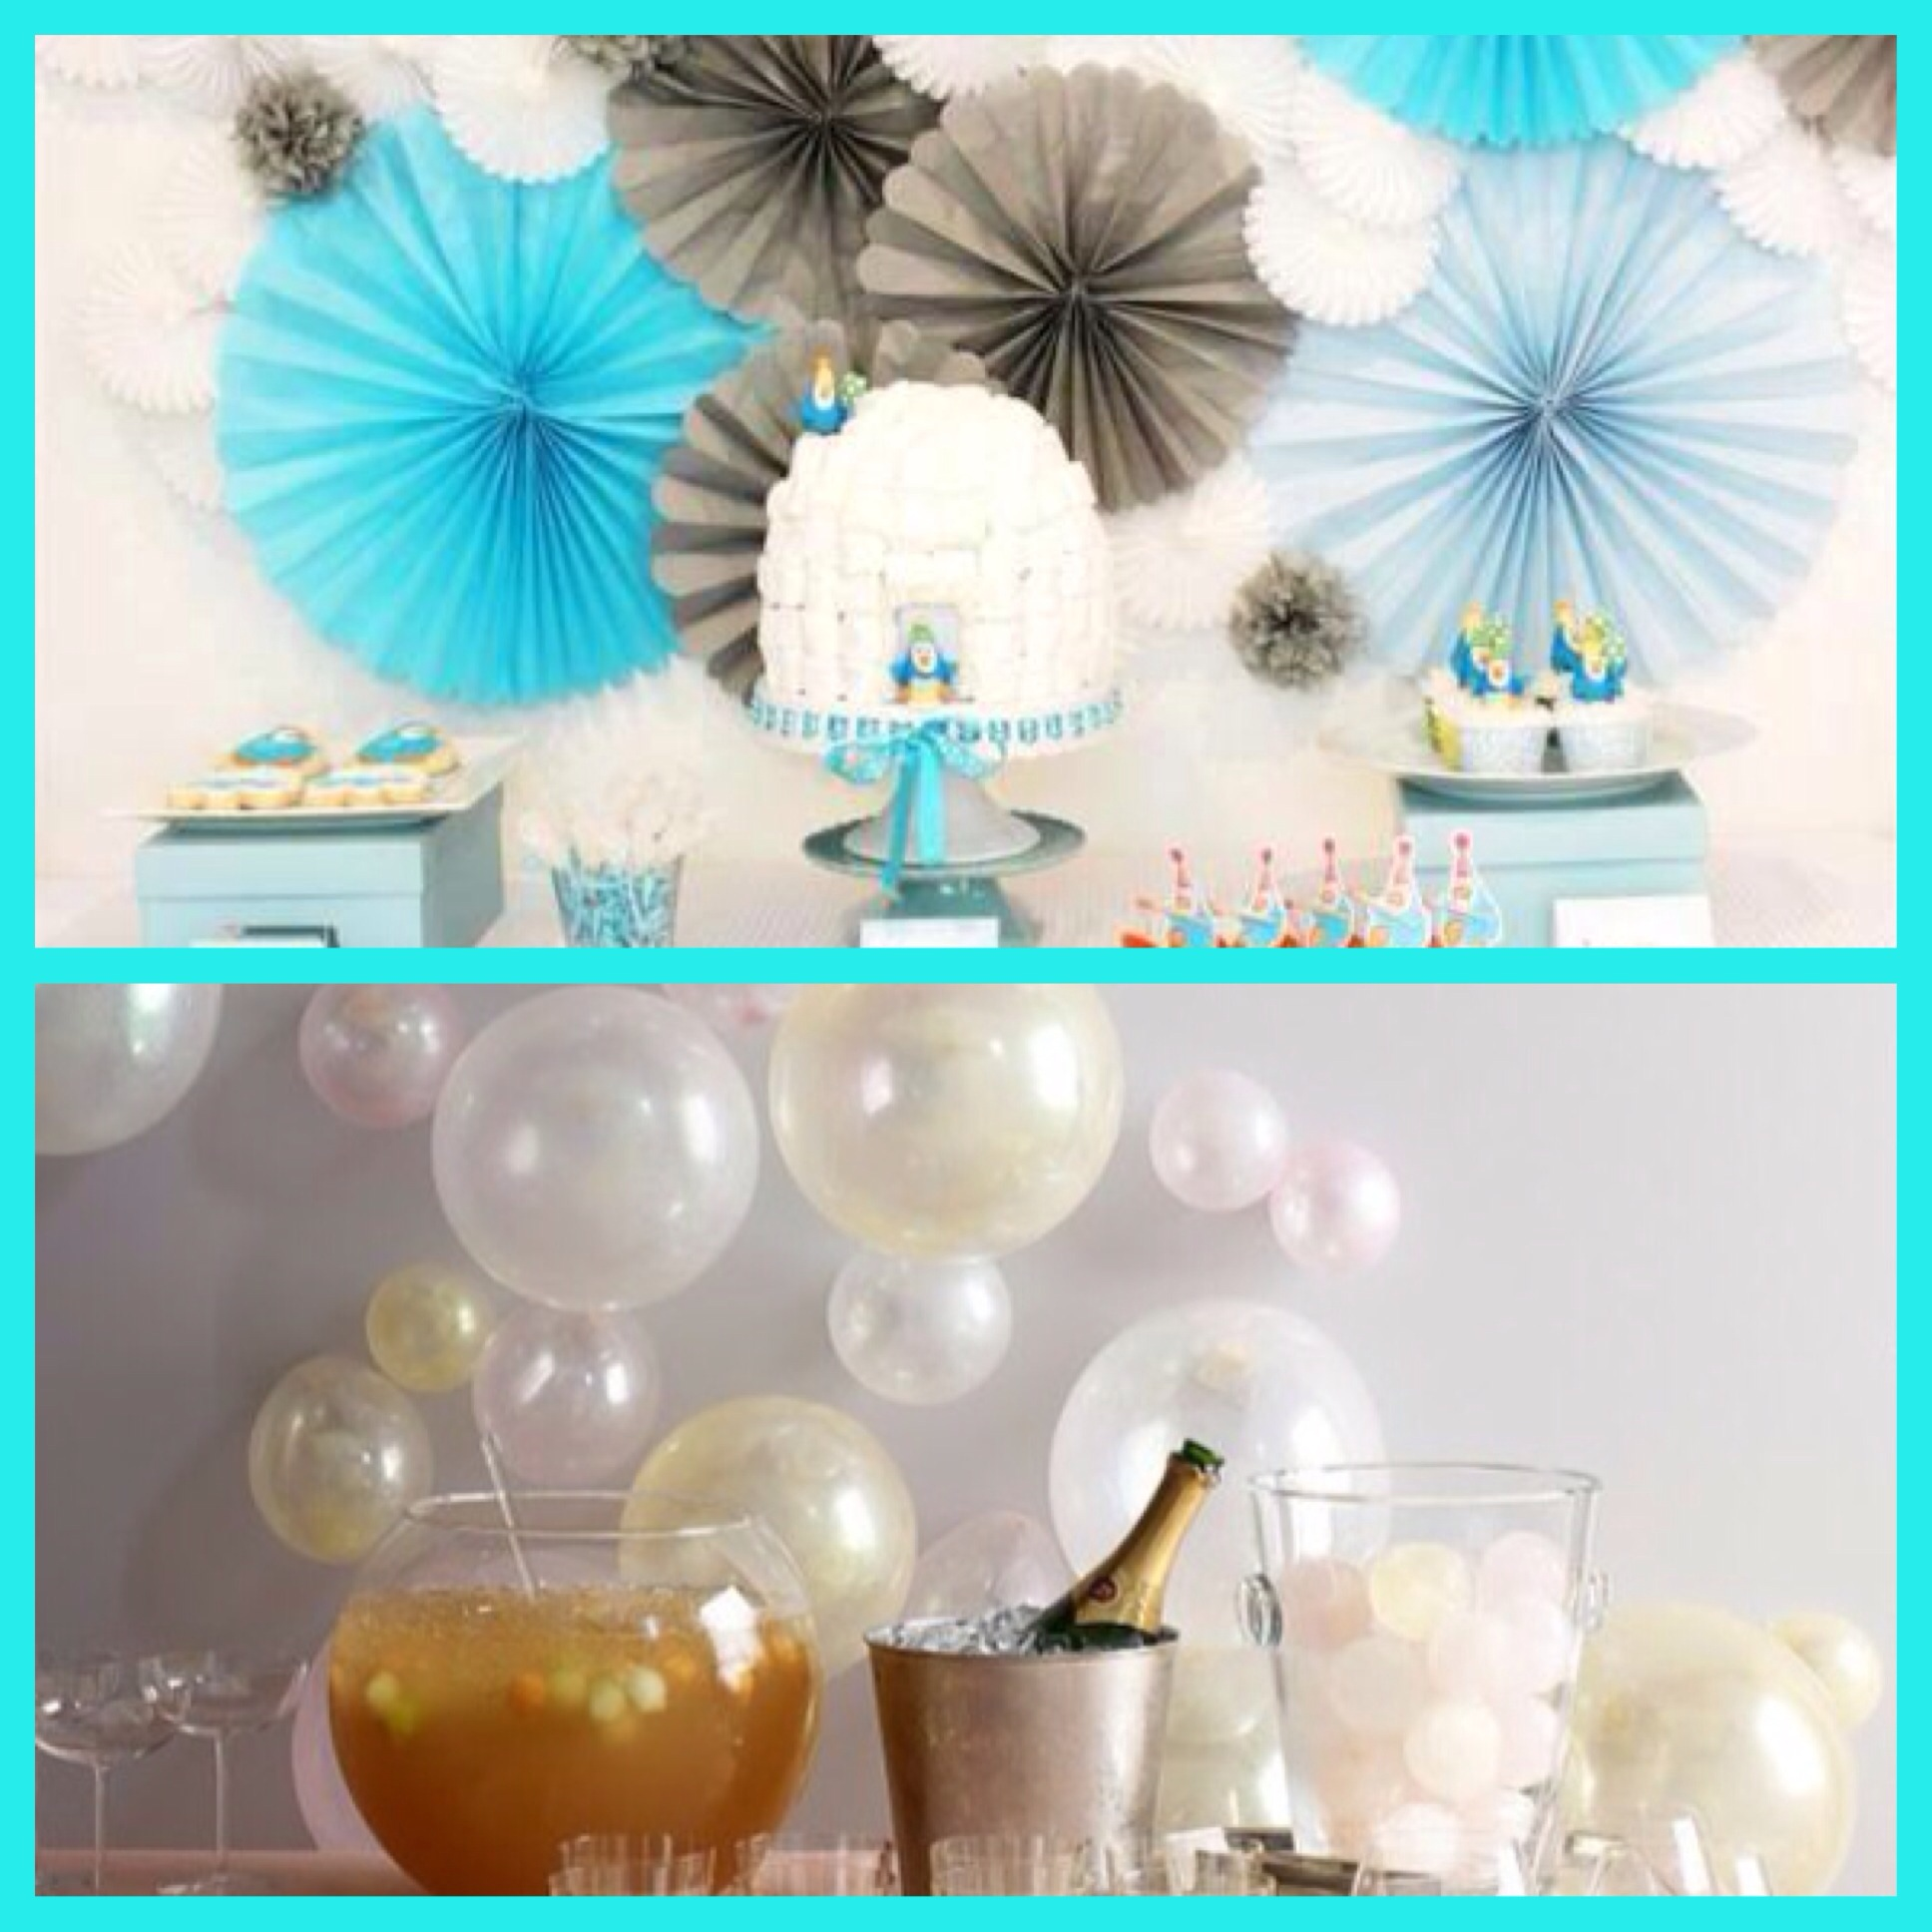 winter themed tissue paper decorations, white balloons on walls